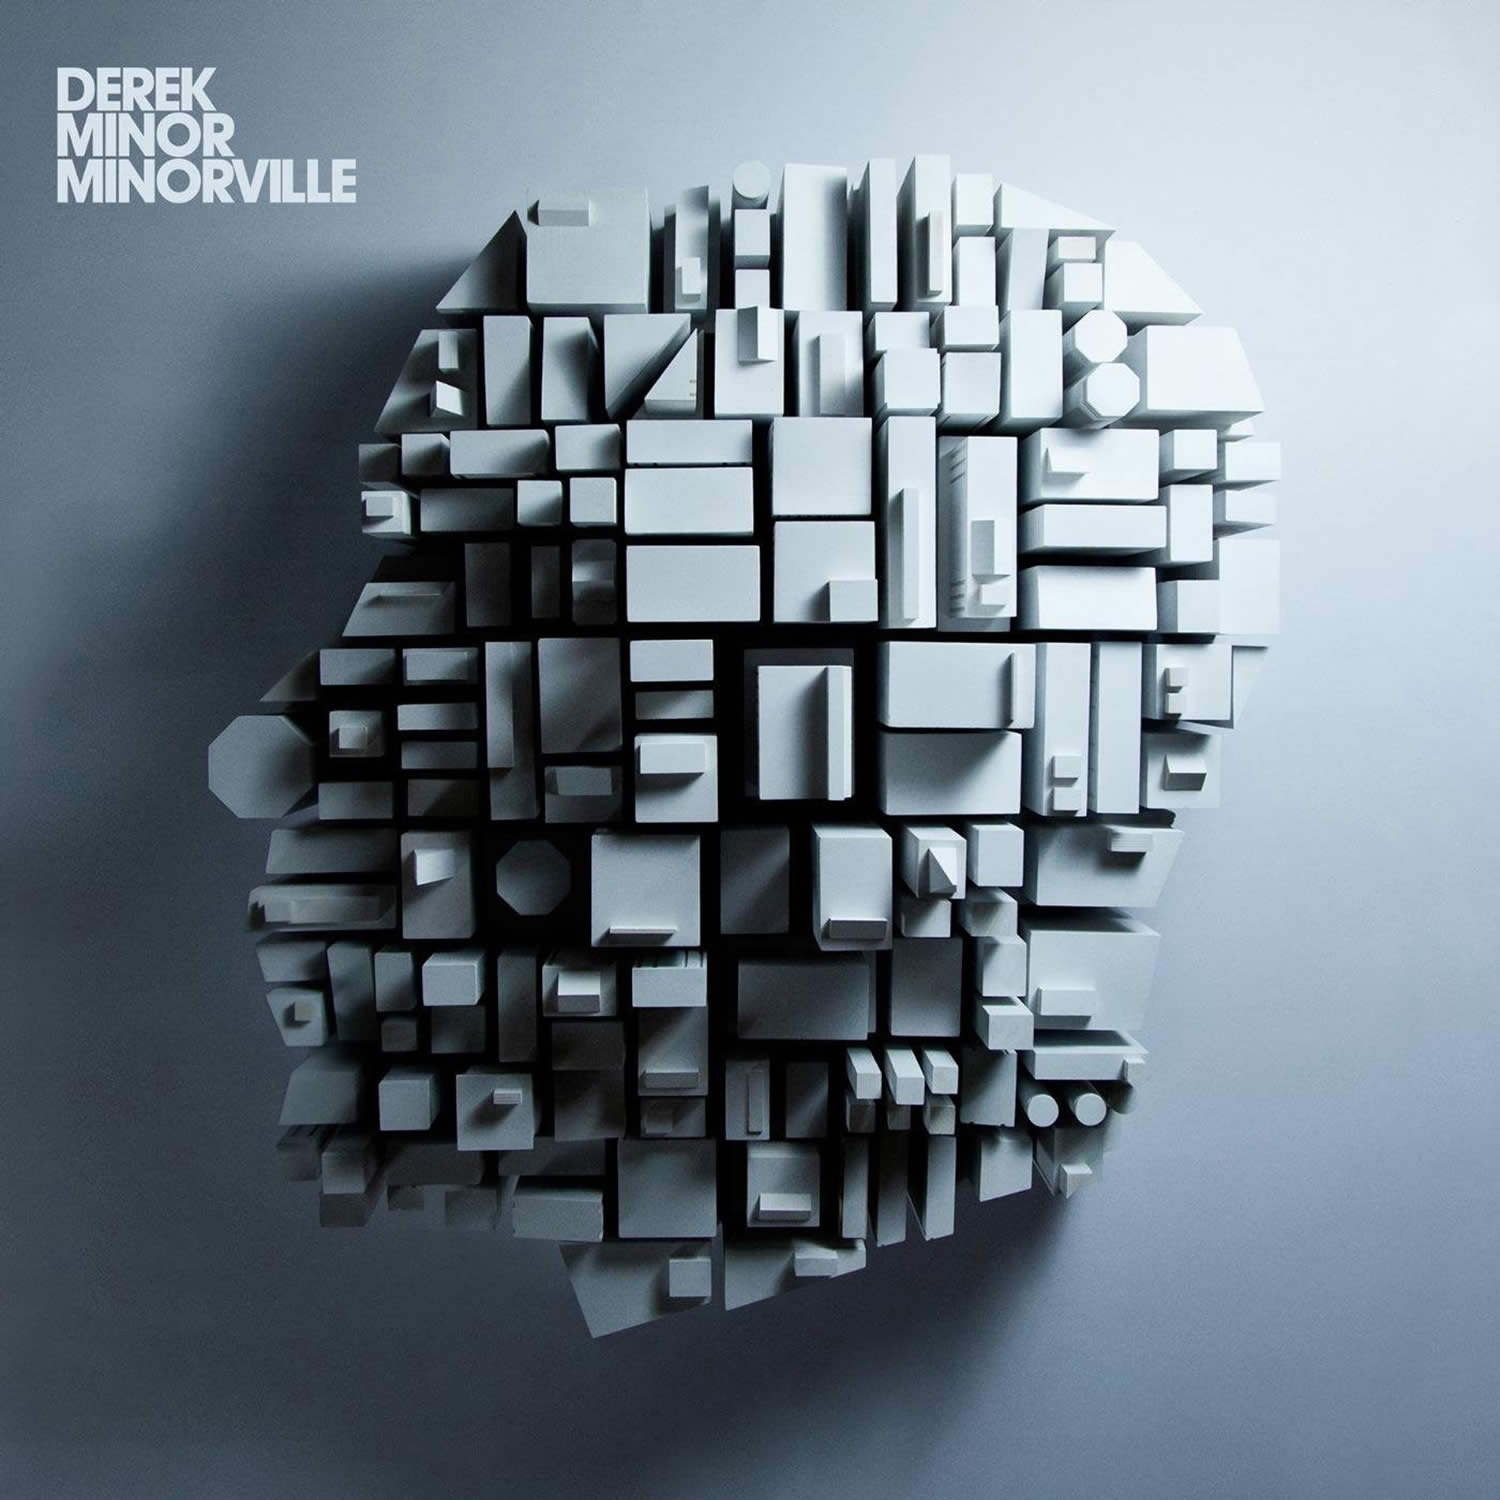 cubes forming a head, derek minor, minorville